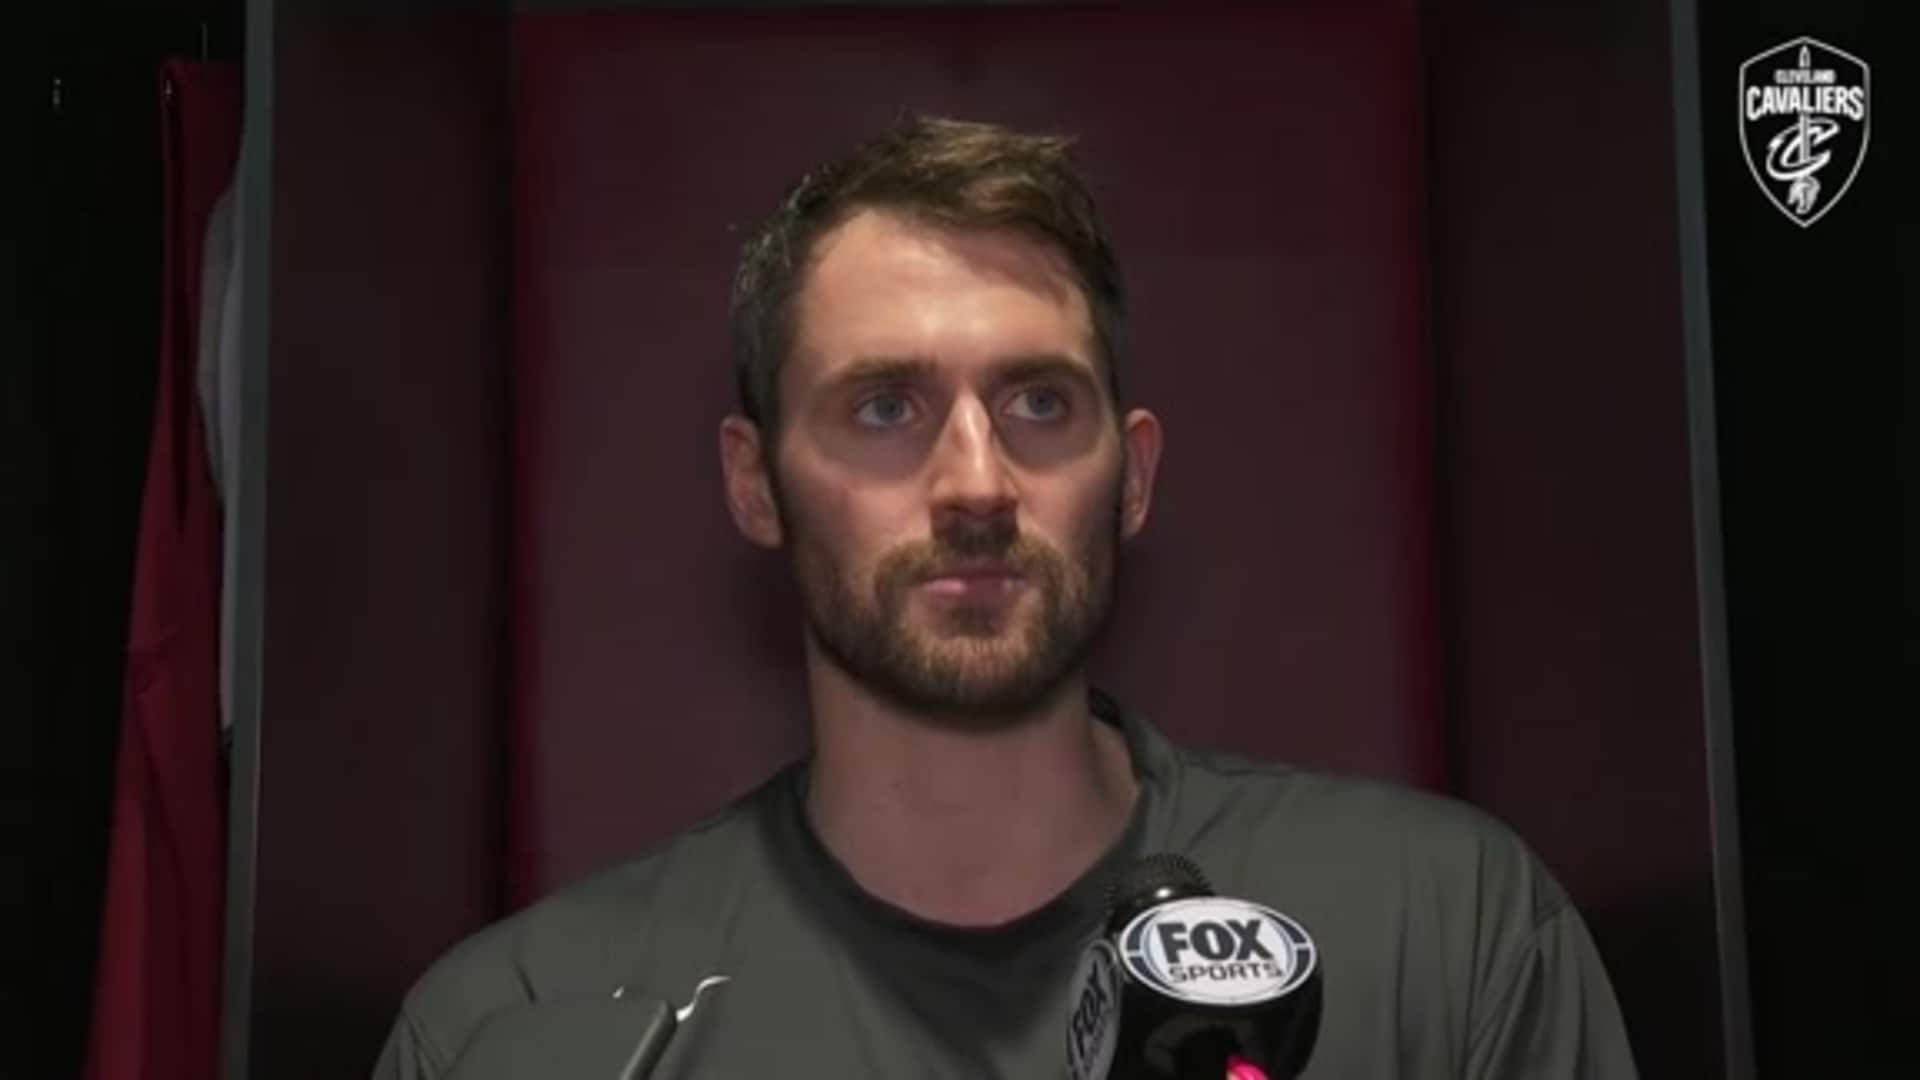 Cavs vs. Wizards Postgame: Kevin Love